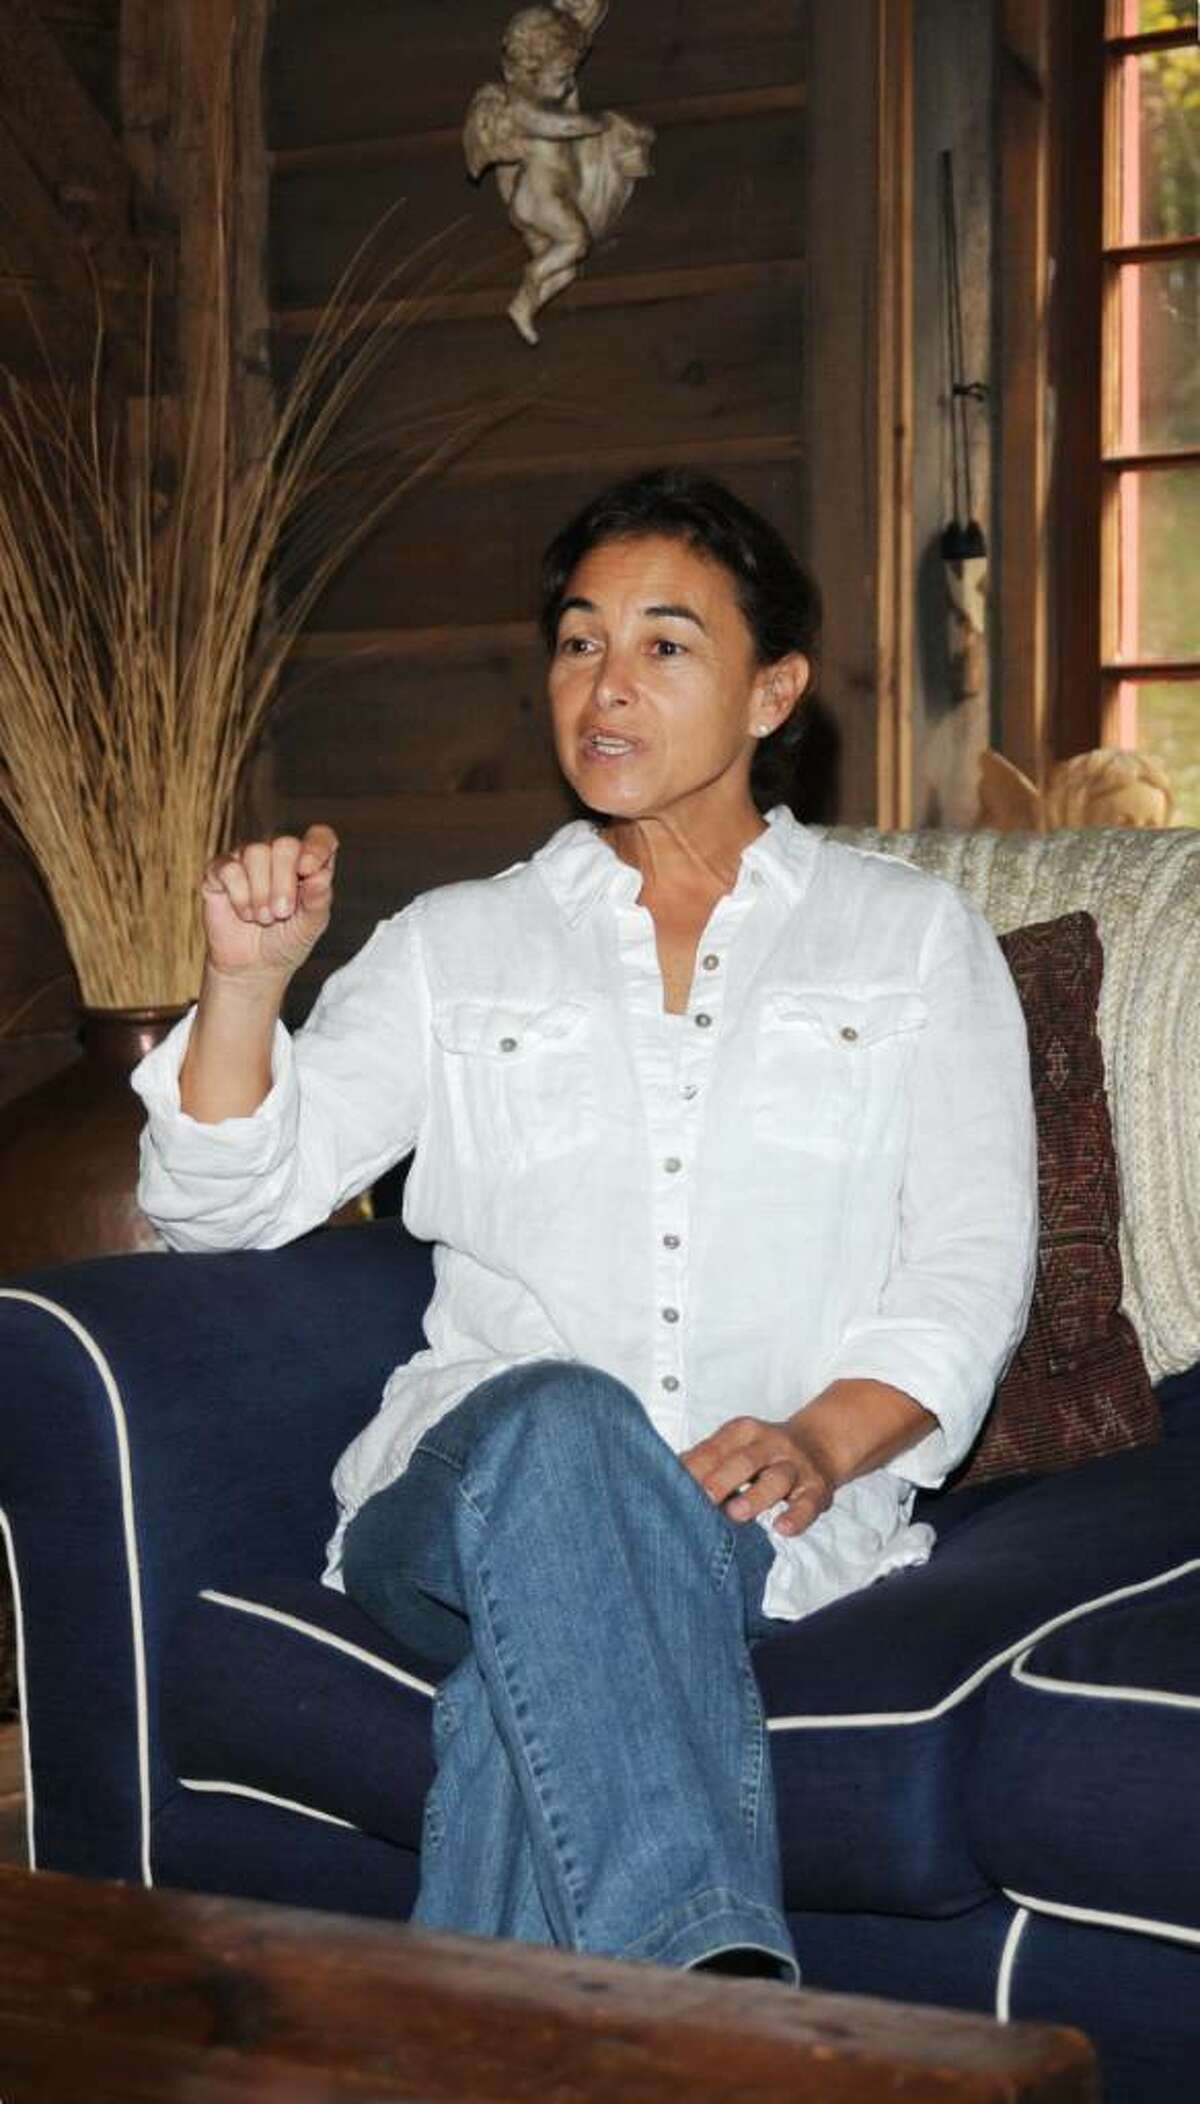 Lynn Carroll, therapist and owner of The Therapy Space, in Sandy Hook, CT discusses the different types of therapy she practices at her studio on Friday, Sept. 25, 2009.